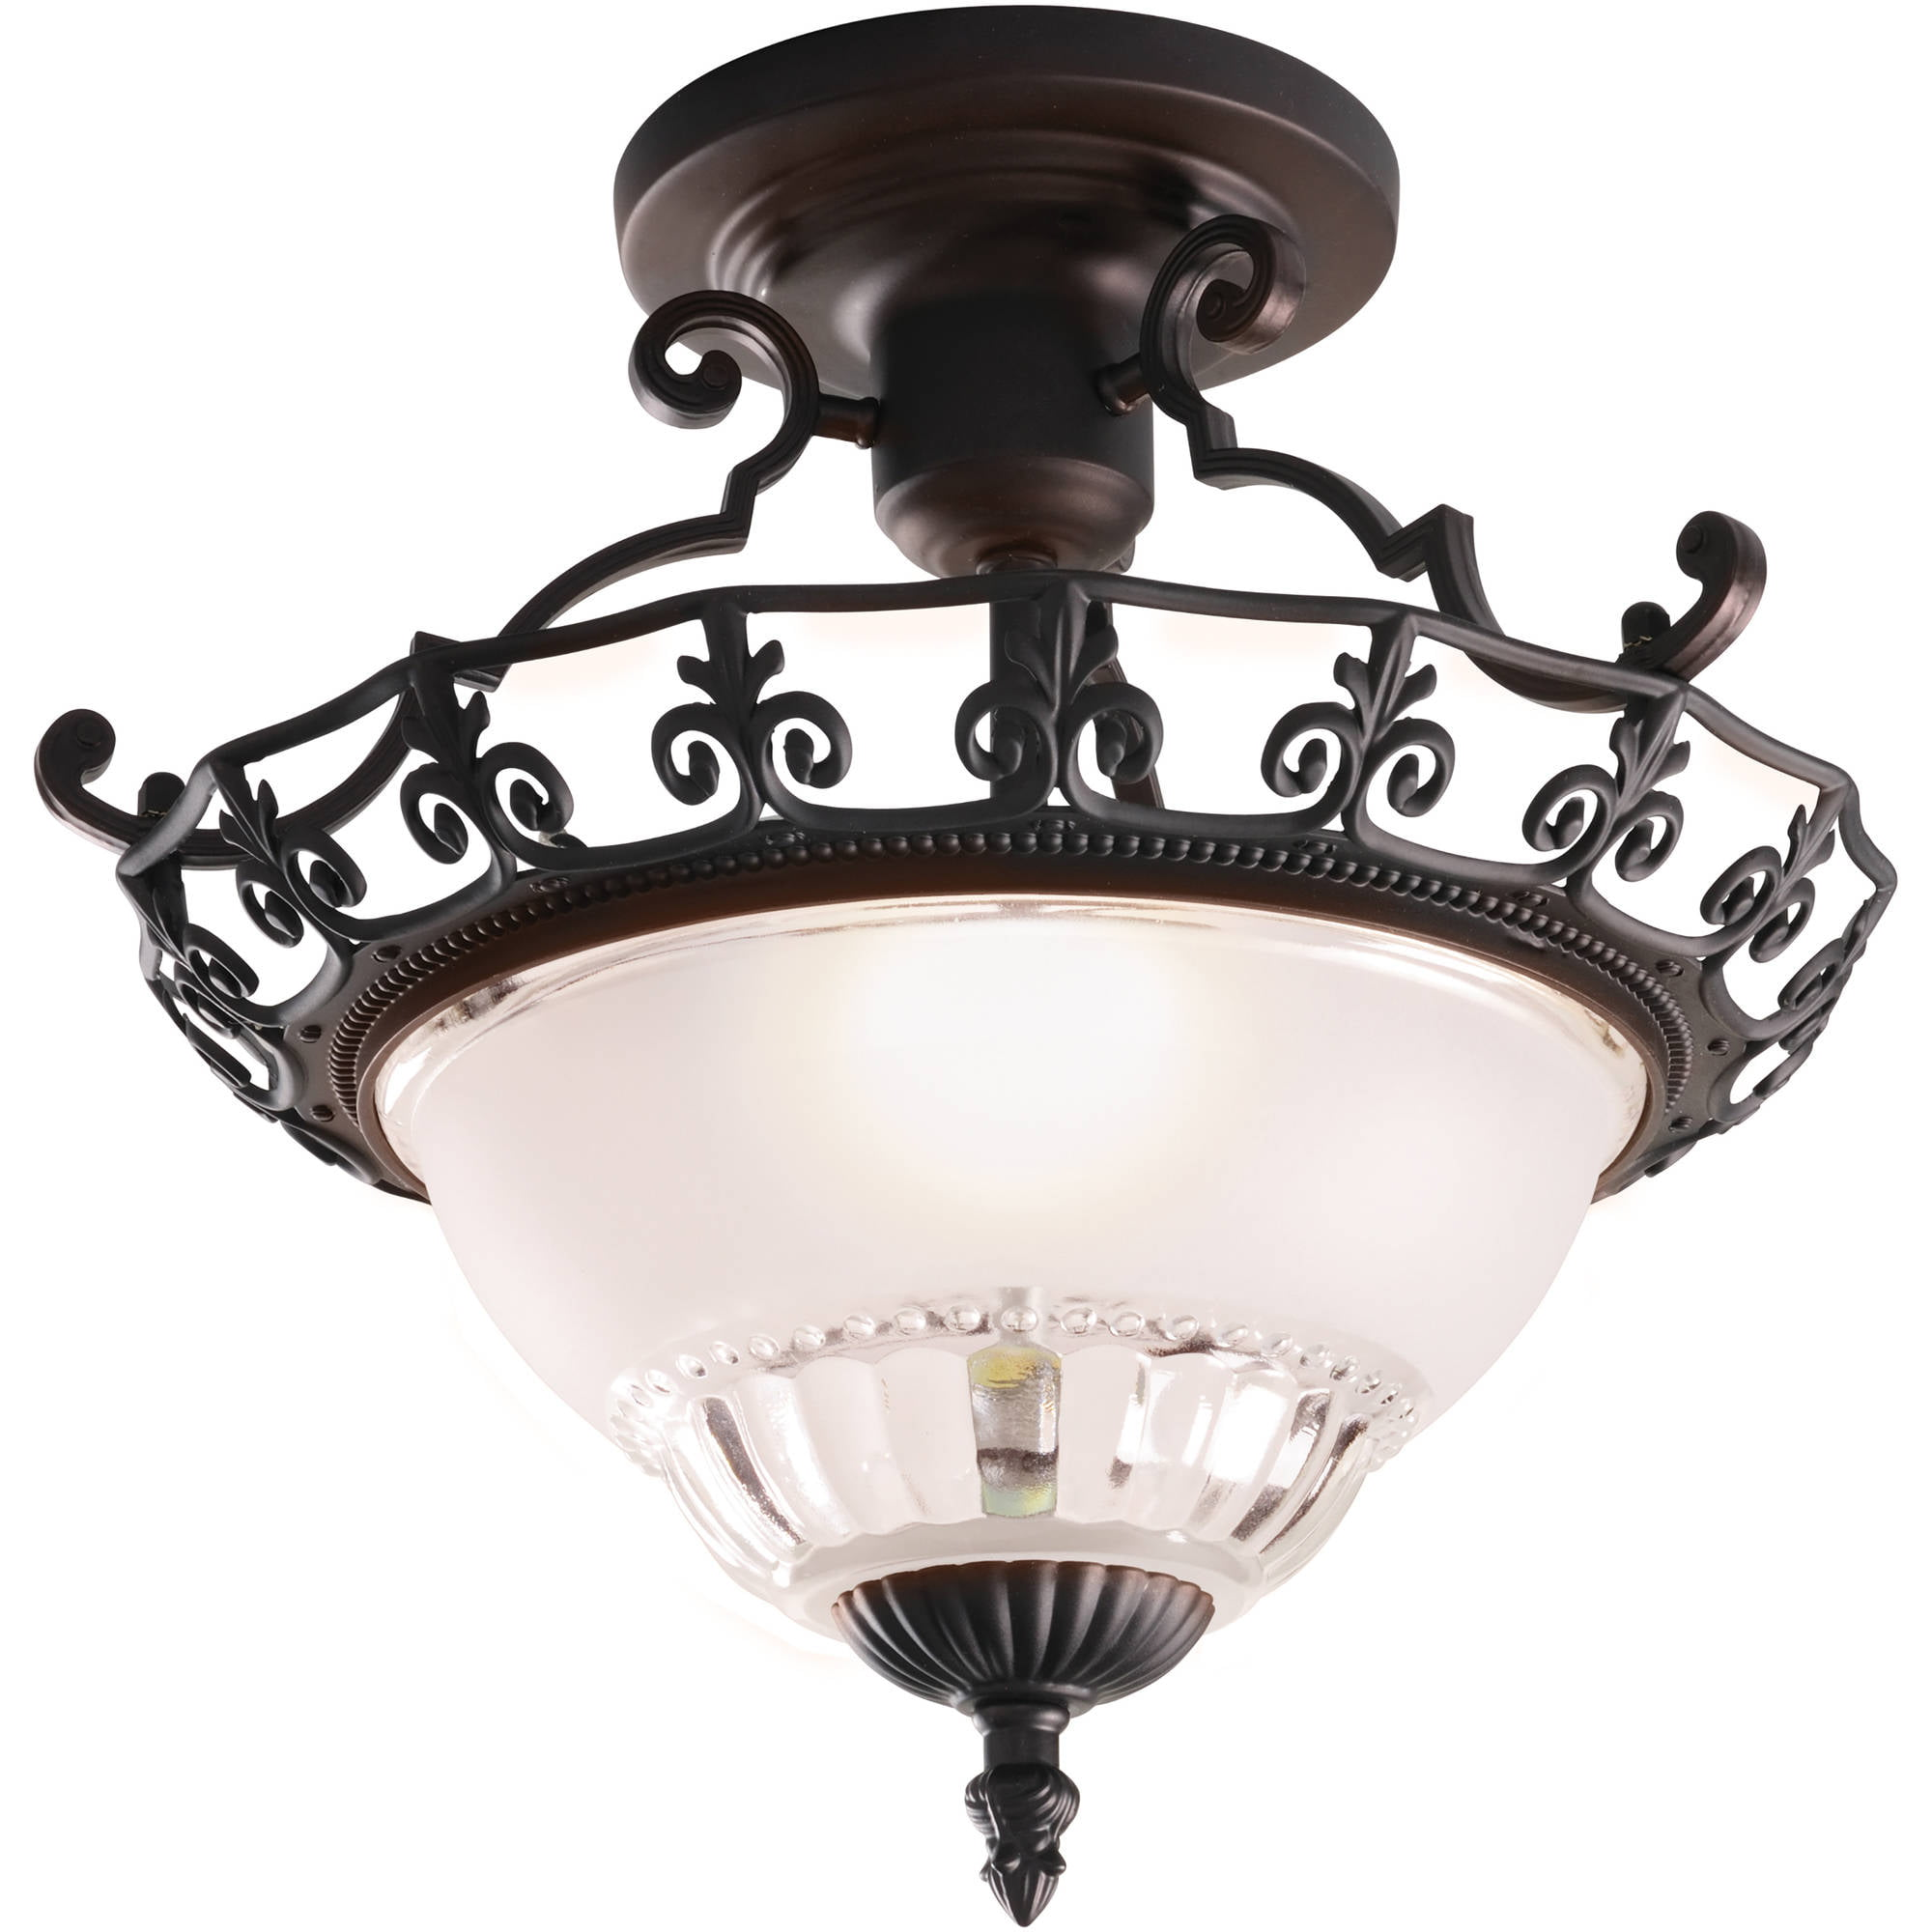 Chapter indoor 1125 ceiling semi flush mount oil rubbed bronze chapter indoor 1125 ceiling semi flush mount oil rubbed bronze walmart aloadofball